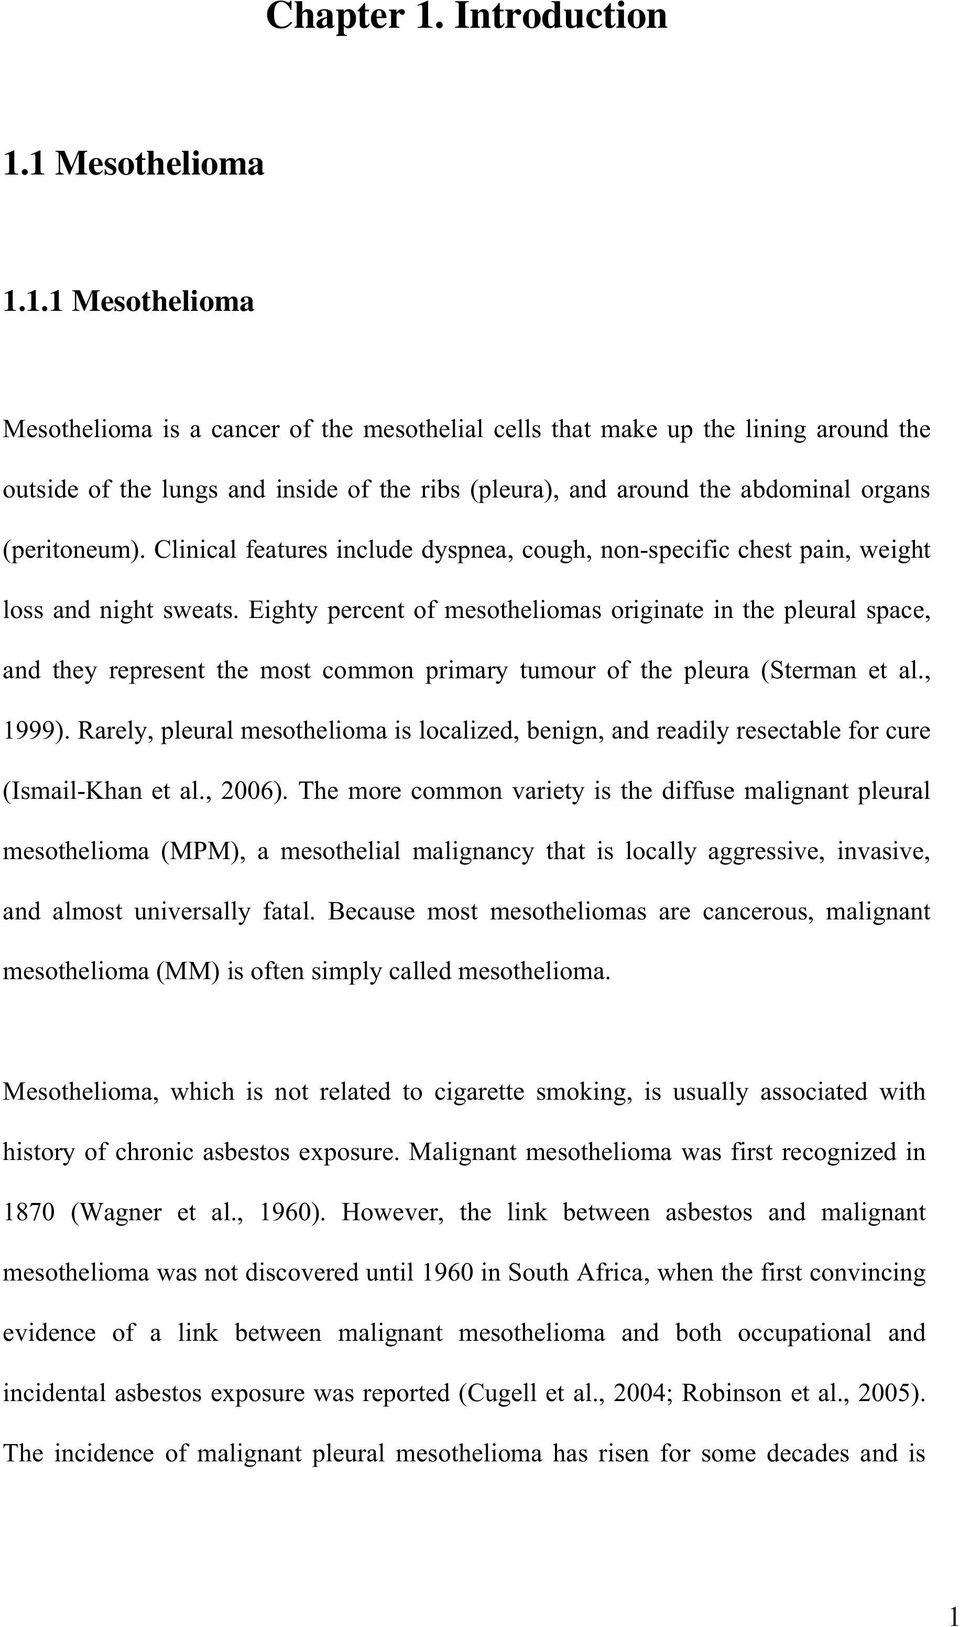 1 Mesothelioma 1.1.1 Mesothelioma Mesothelioma is a cancer of the mesothelial cells that make up the lining around the outside of the lungs and inside of the ribs (pleura), and around the abdominal